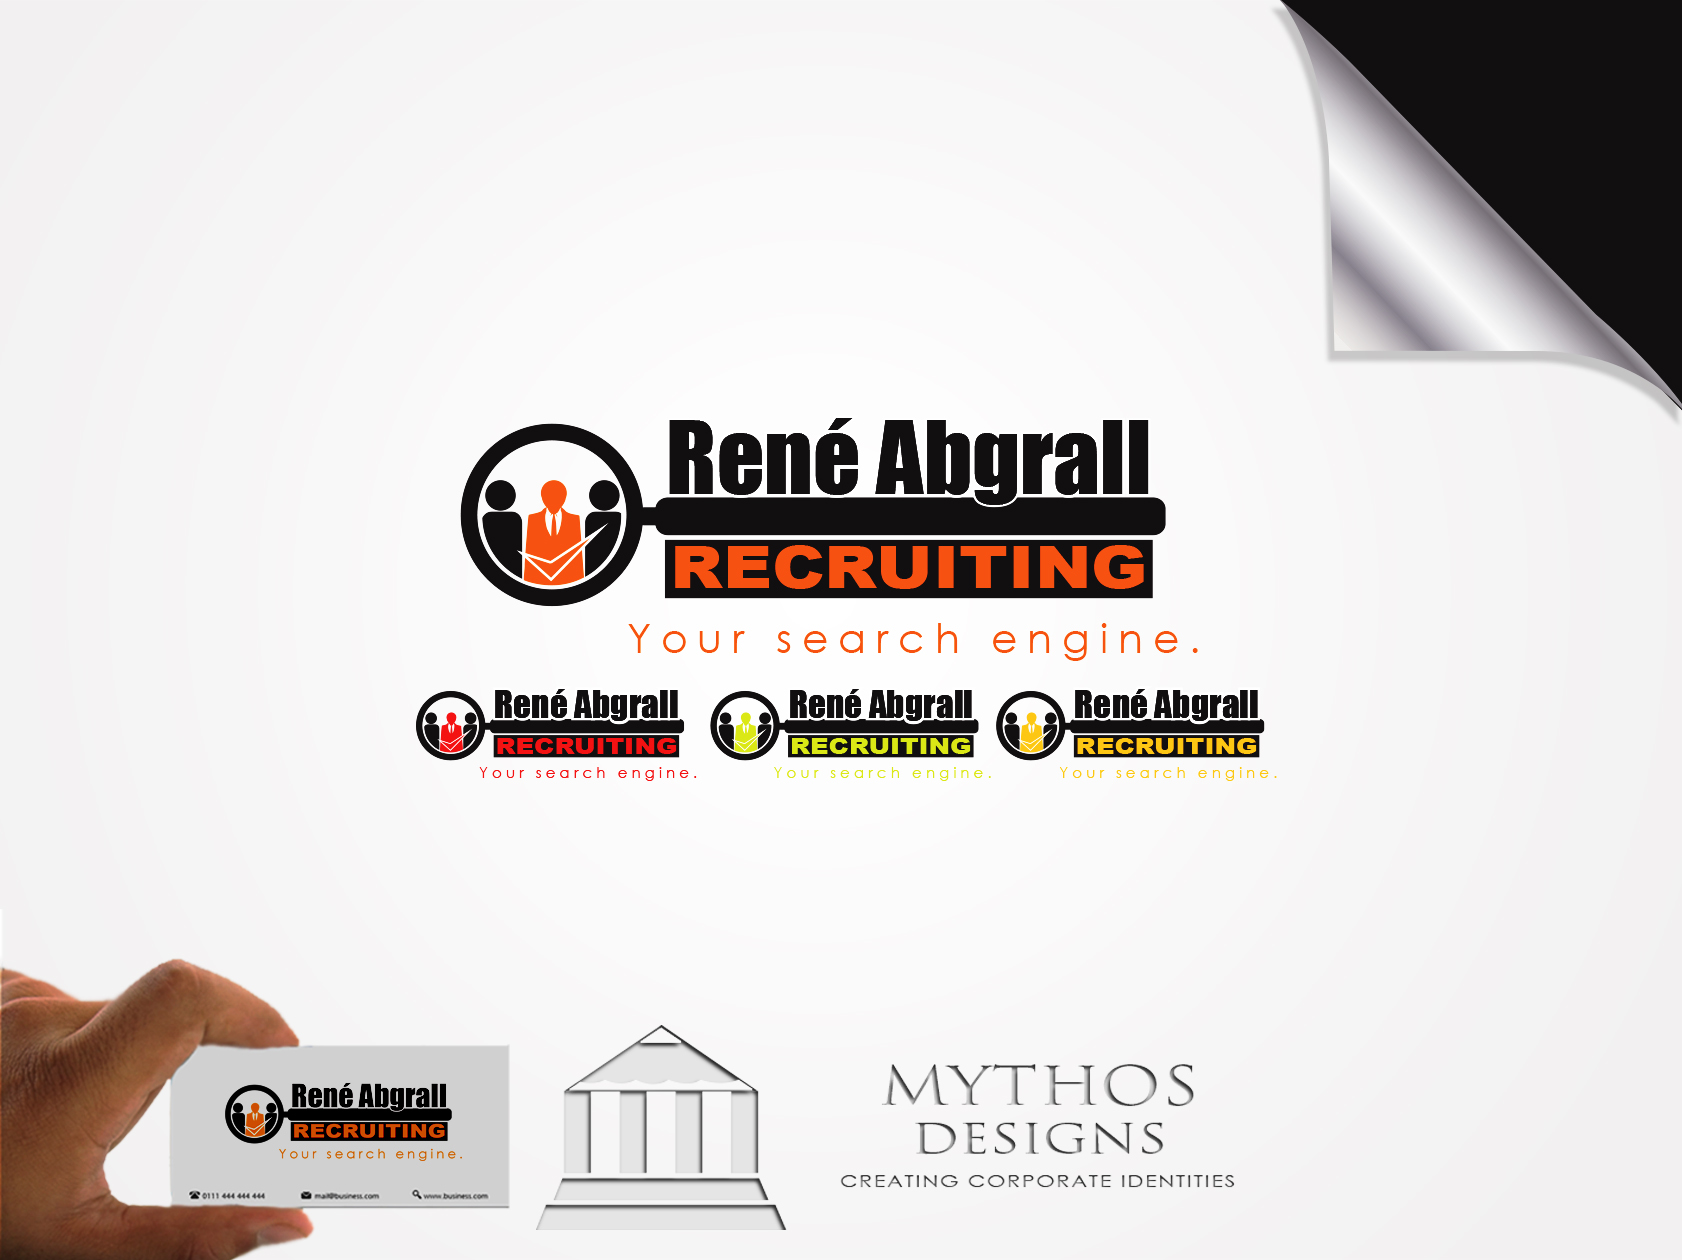 Logo Design by Mythos Designs - Entry No. 15 in the Logo Design Contest Artistic Logo Design for René Abgrall Recruiting.